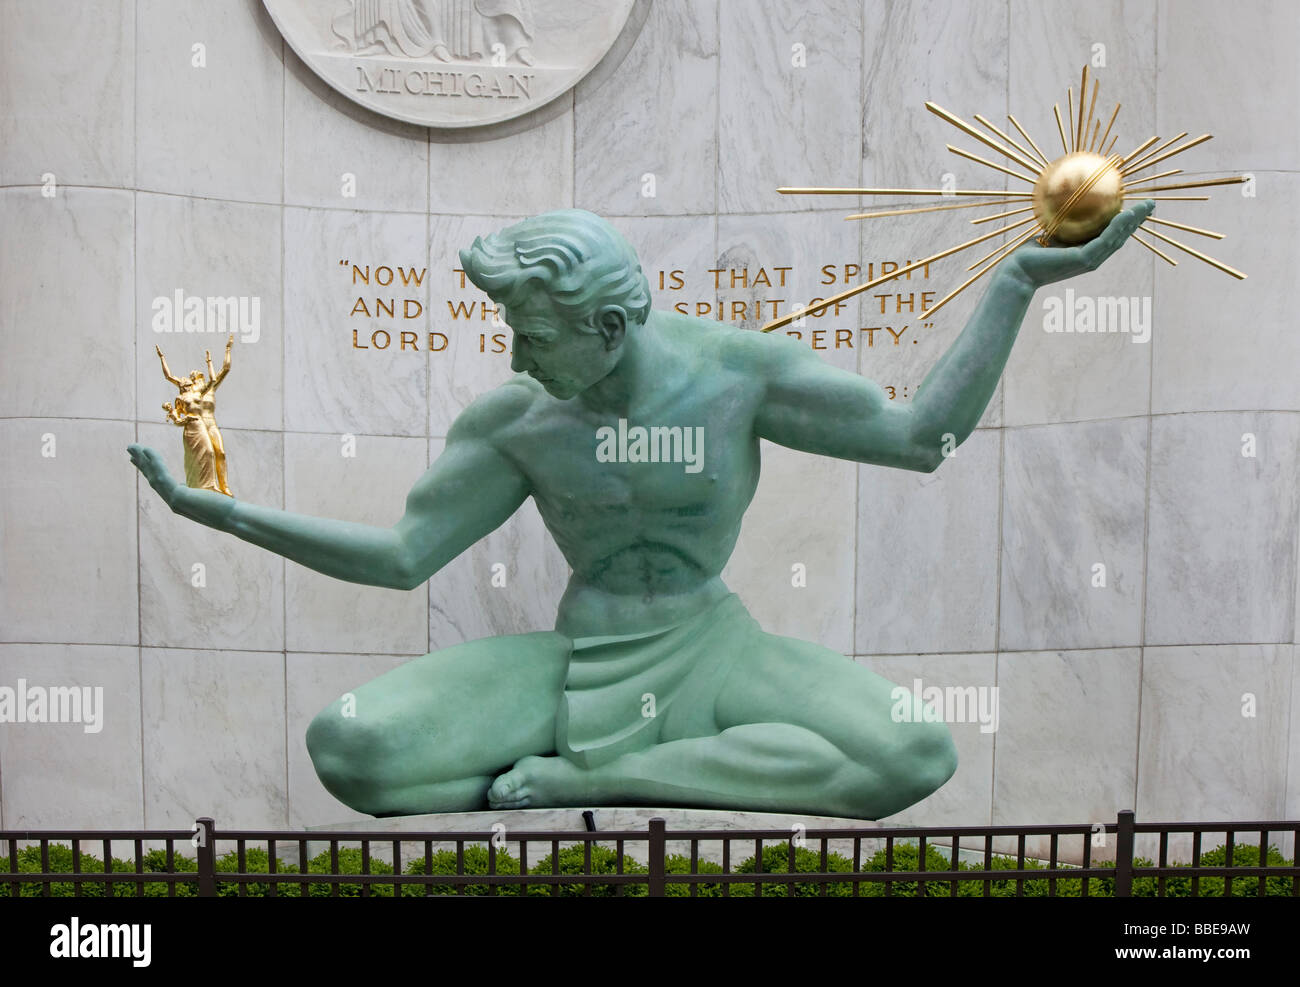 Detroit Michigan The Spirit of Detroit Sculpture by Marshall Fredericks at the Coleman Young Municipal Building - Stock Image